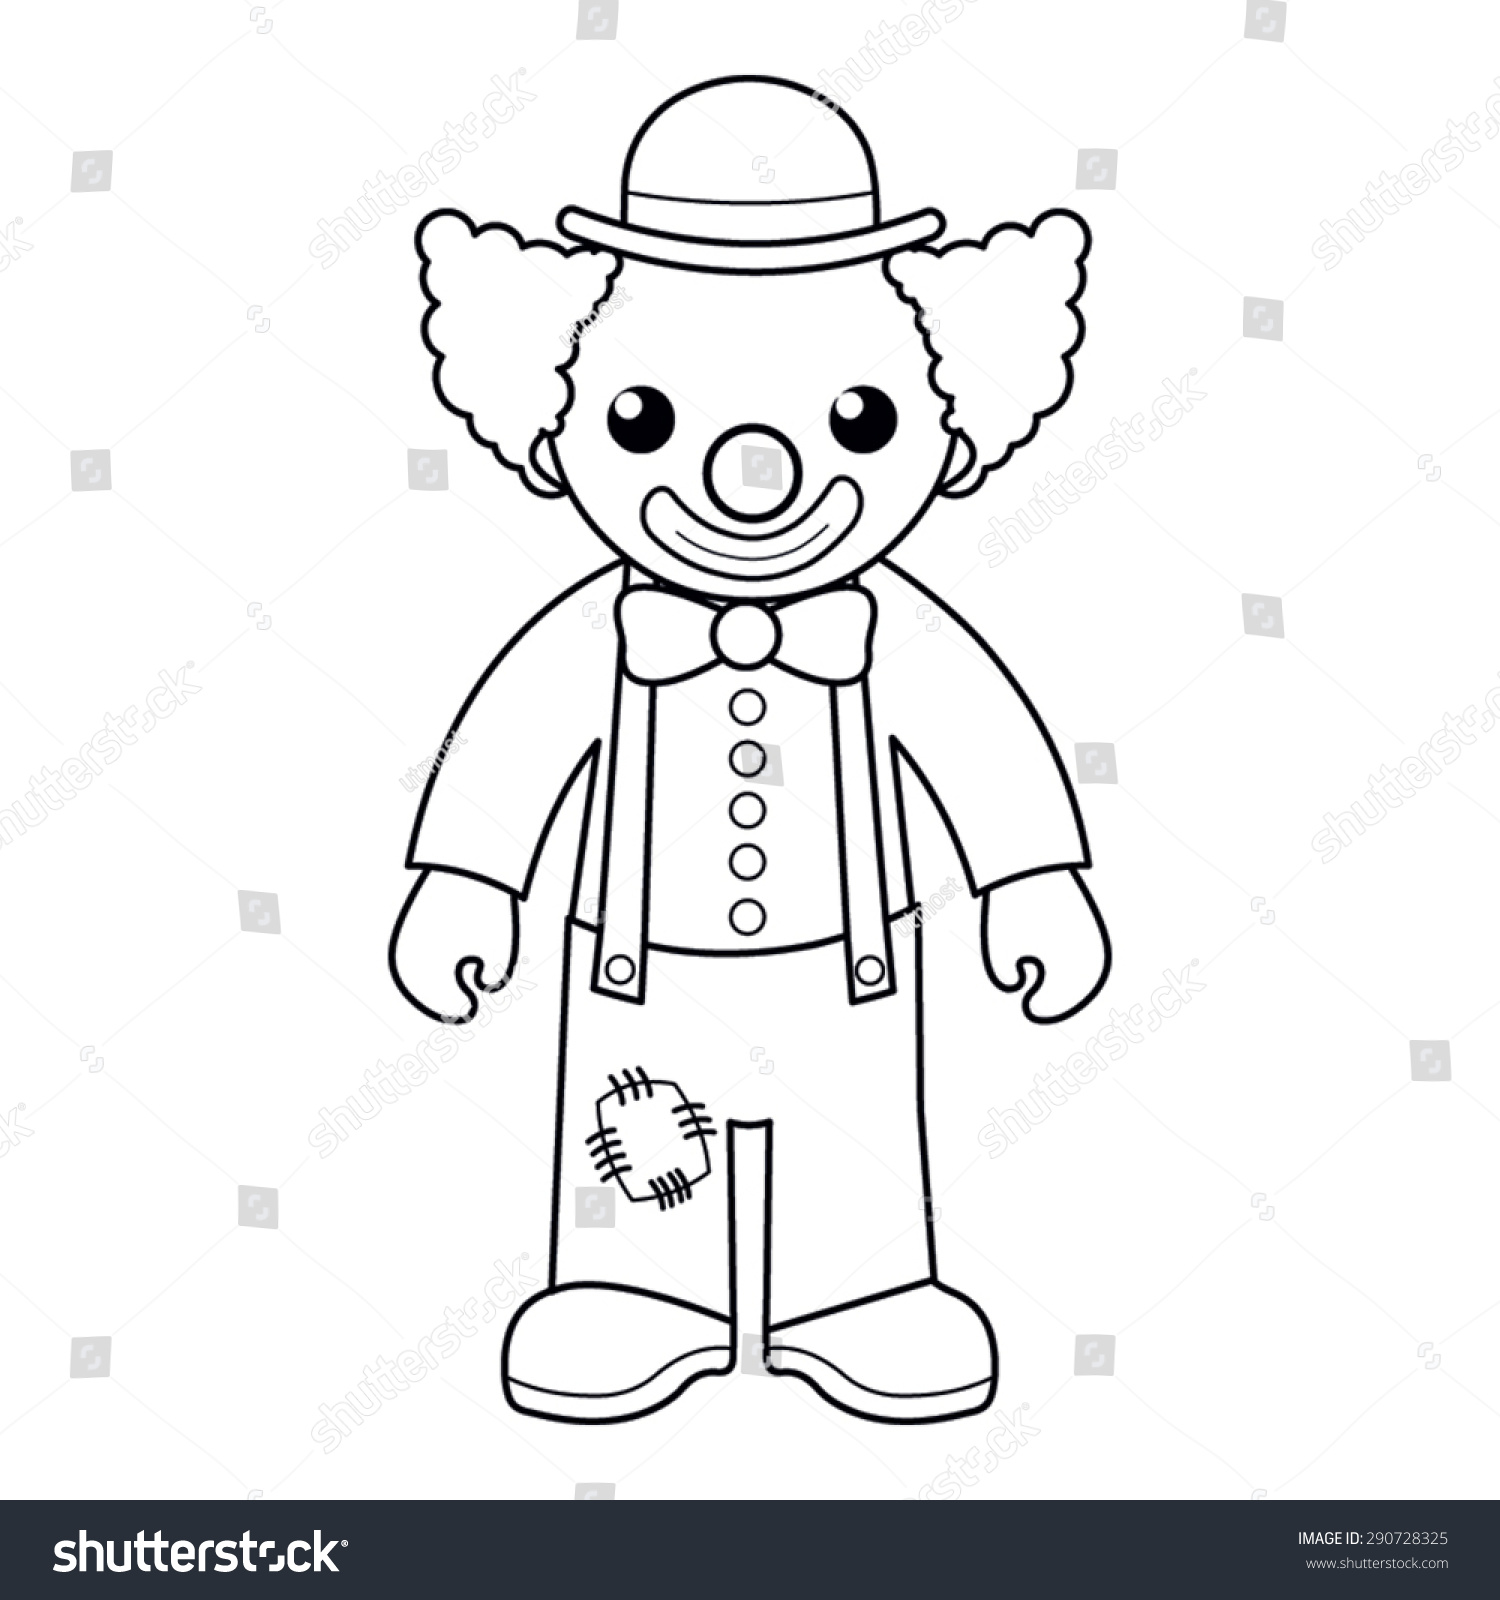 Coloring Page Vector Illustration Black White Stock Vector